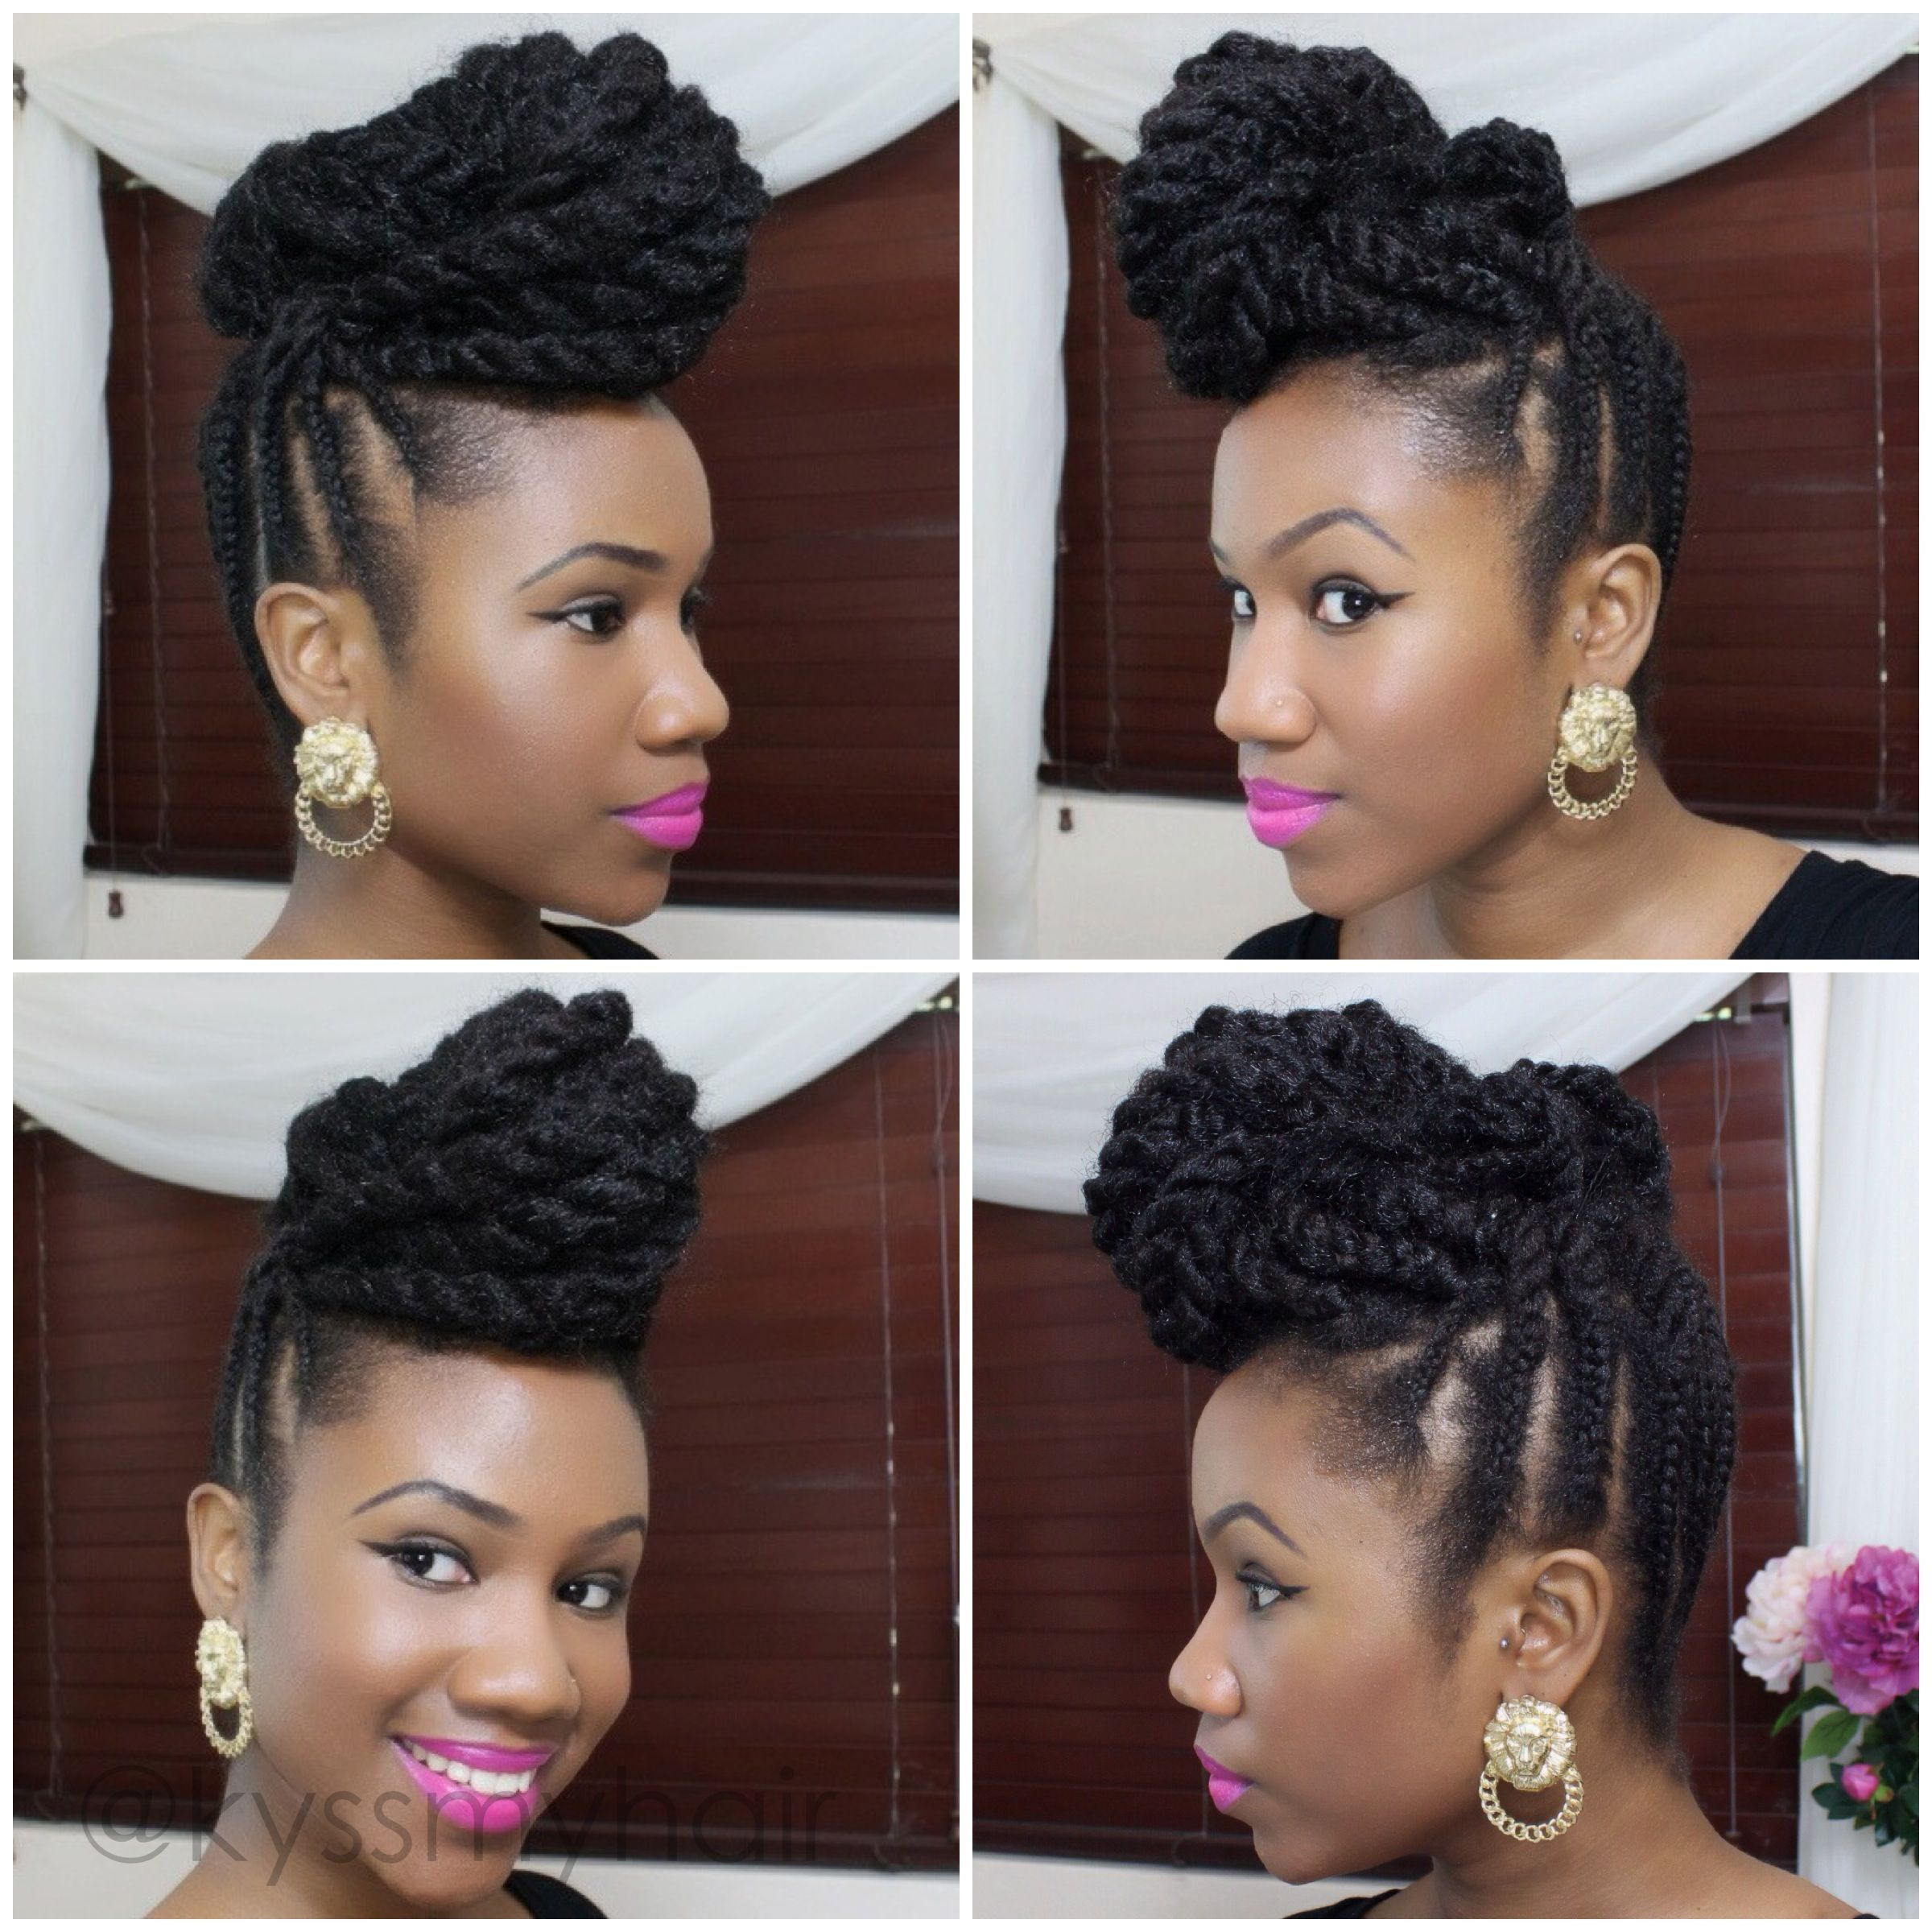 Braided Updo On Natural Hair Using Marley Hair Kyss My Hair Kyss